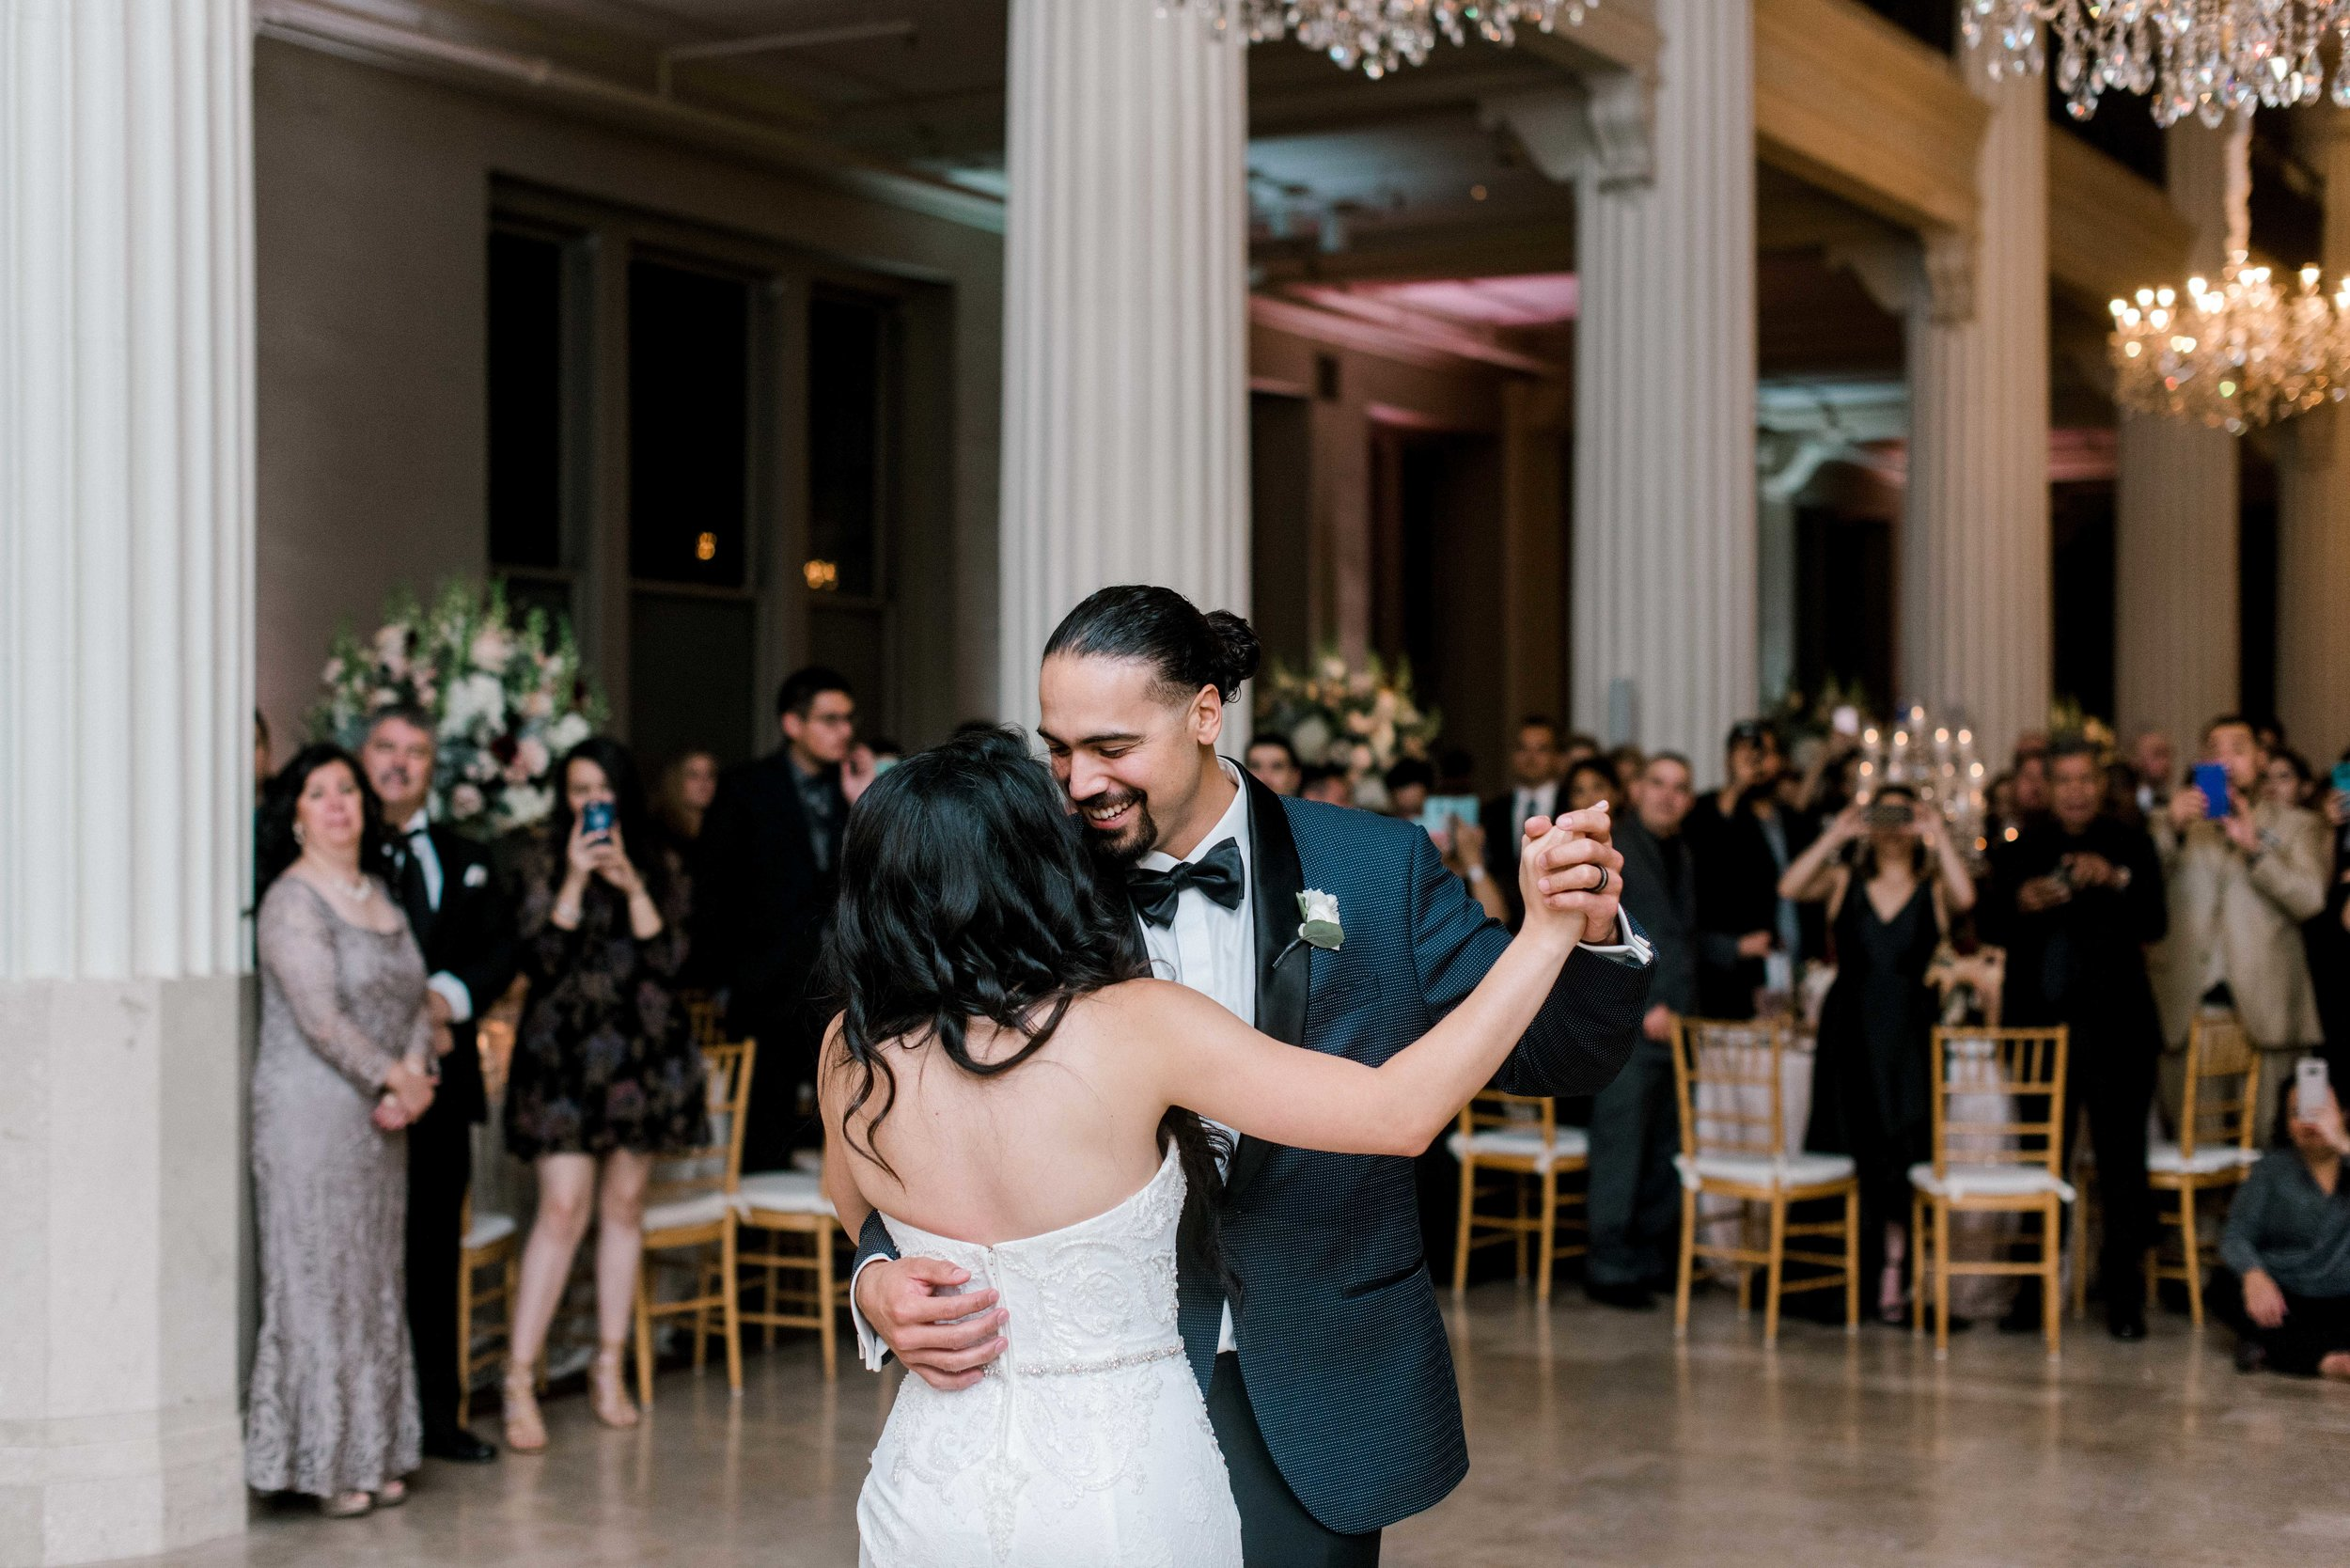 Houston-Wedding-Fine-Art-Film-Photographer-Belle-Events-Belle-of-the-Ball-Anthony-Rendon-Washington-Nationals-The-Corinthian-Style-Me-Pretty-34.jpg